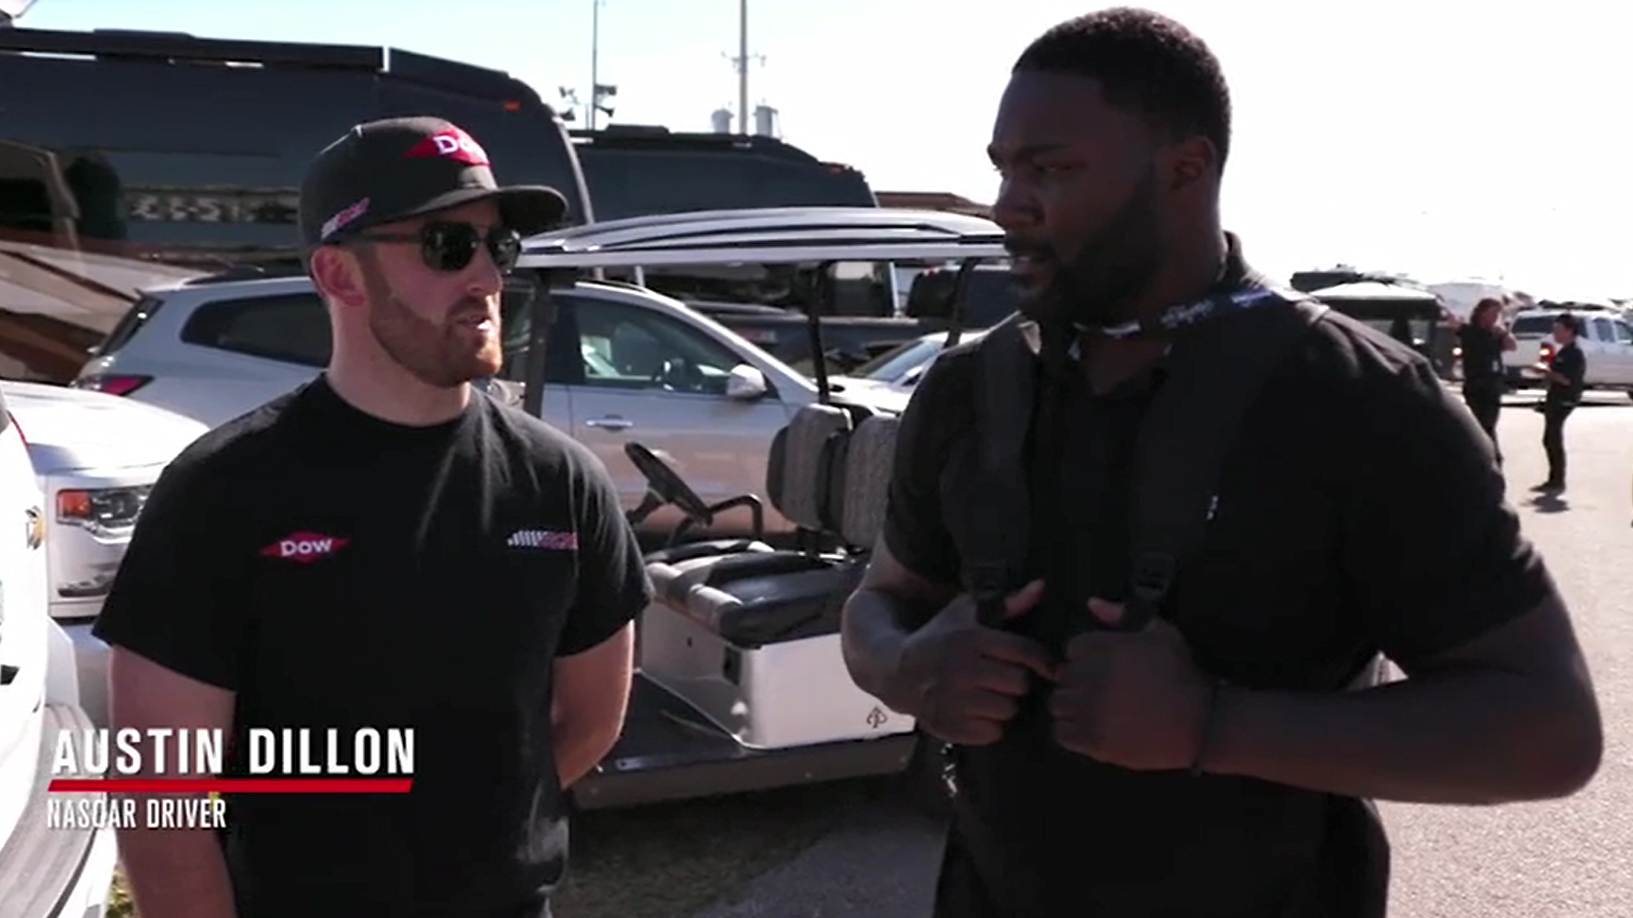 Austin Dillon Gives UFC's Anthony 'Rumble' Johnson NASCAR Experience